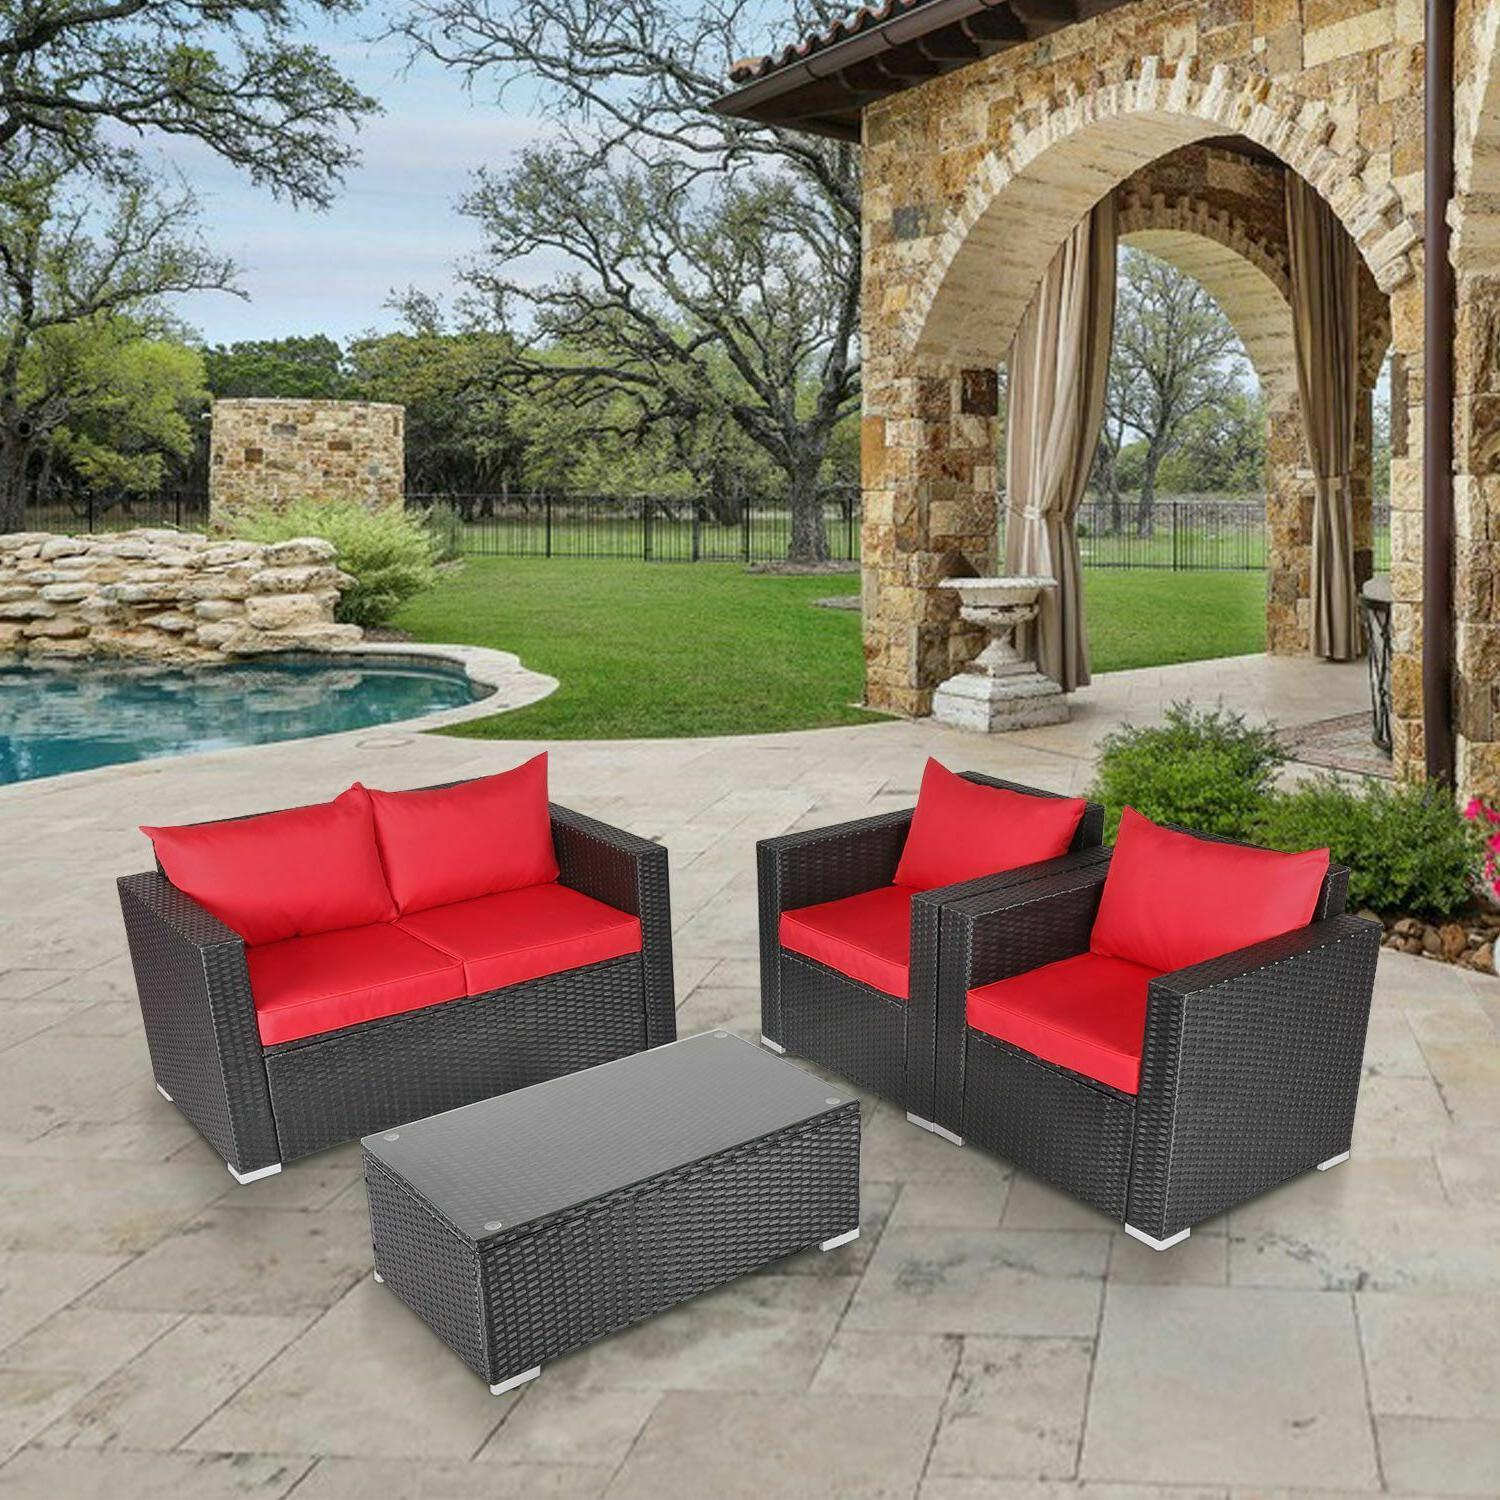 4PC Outdoor Set Sectional Cushioned Couch